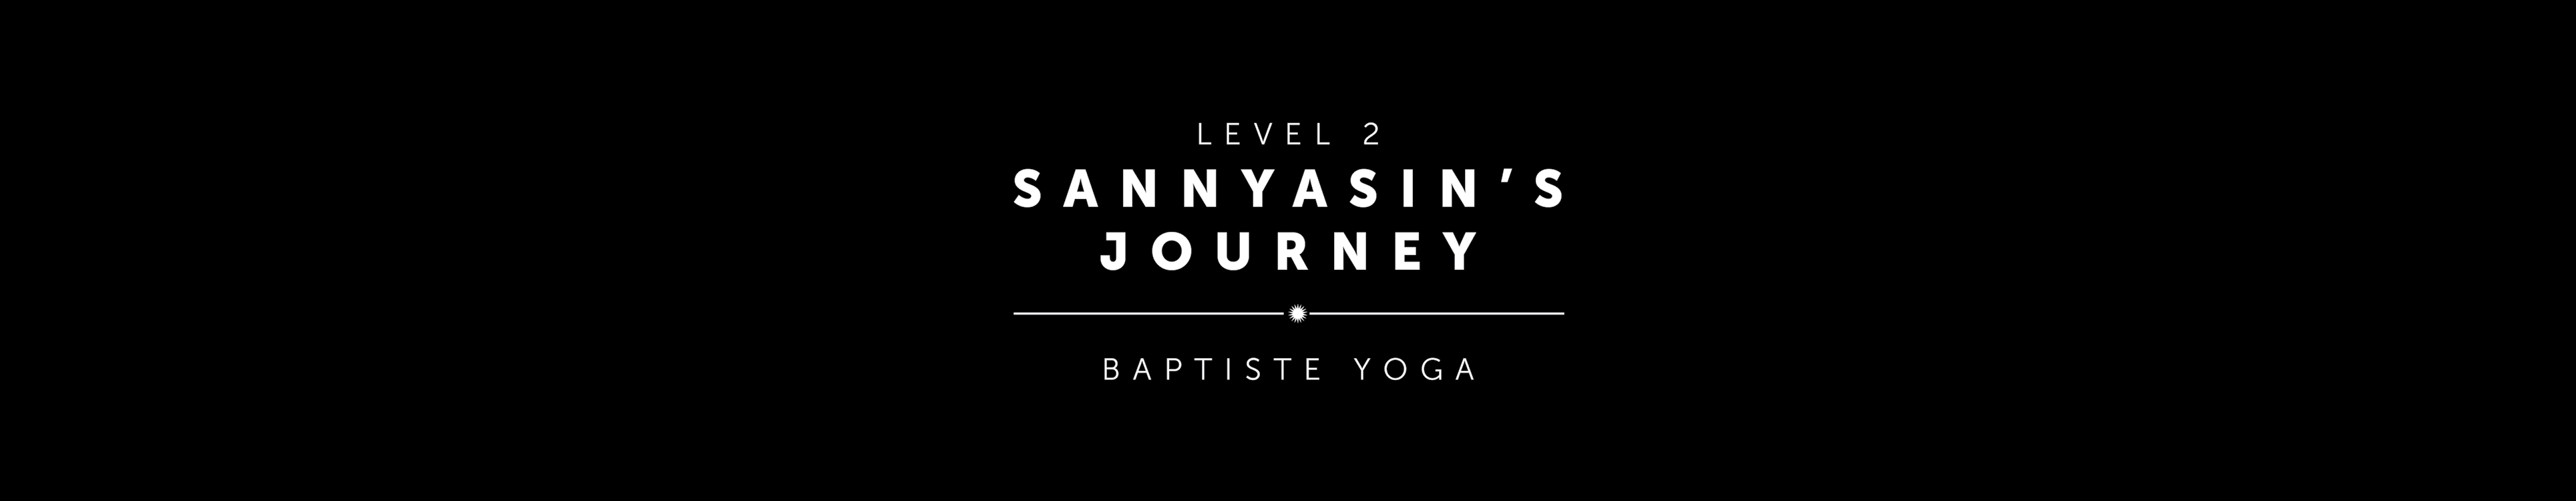 Level Two: The Sannyasin's Journey | Sedona, AZ